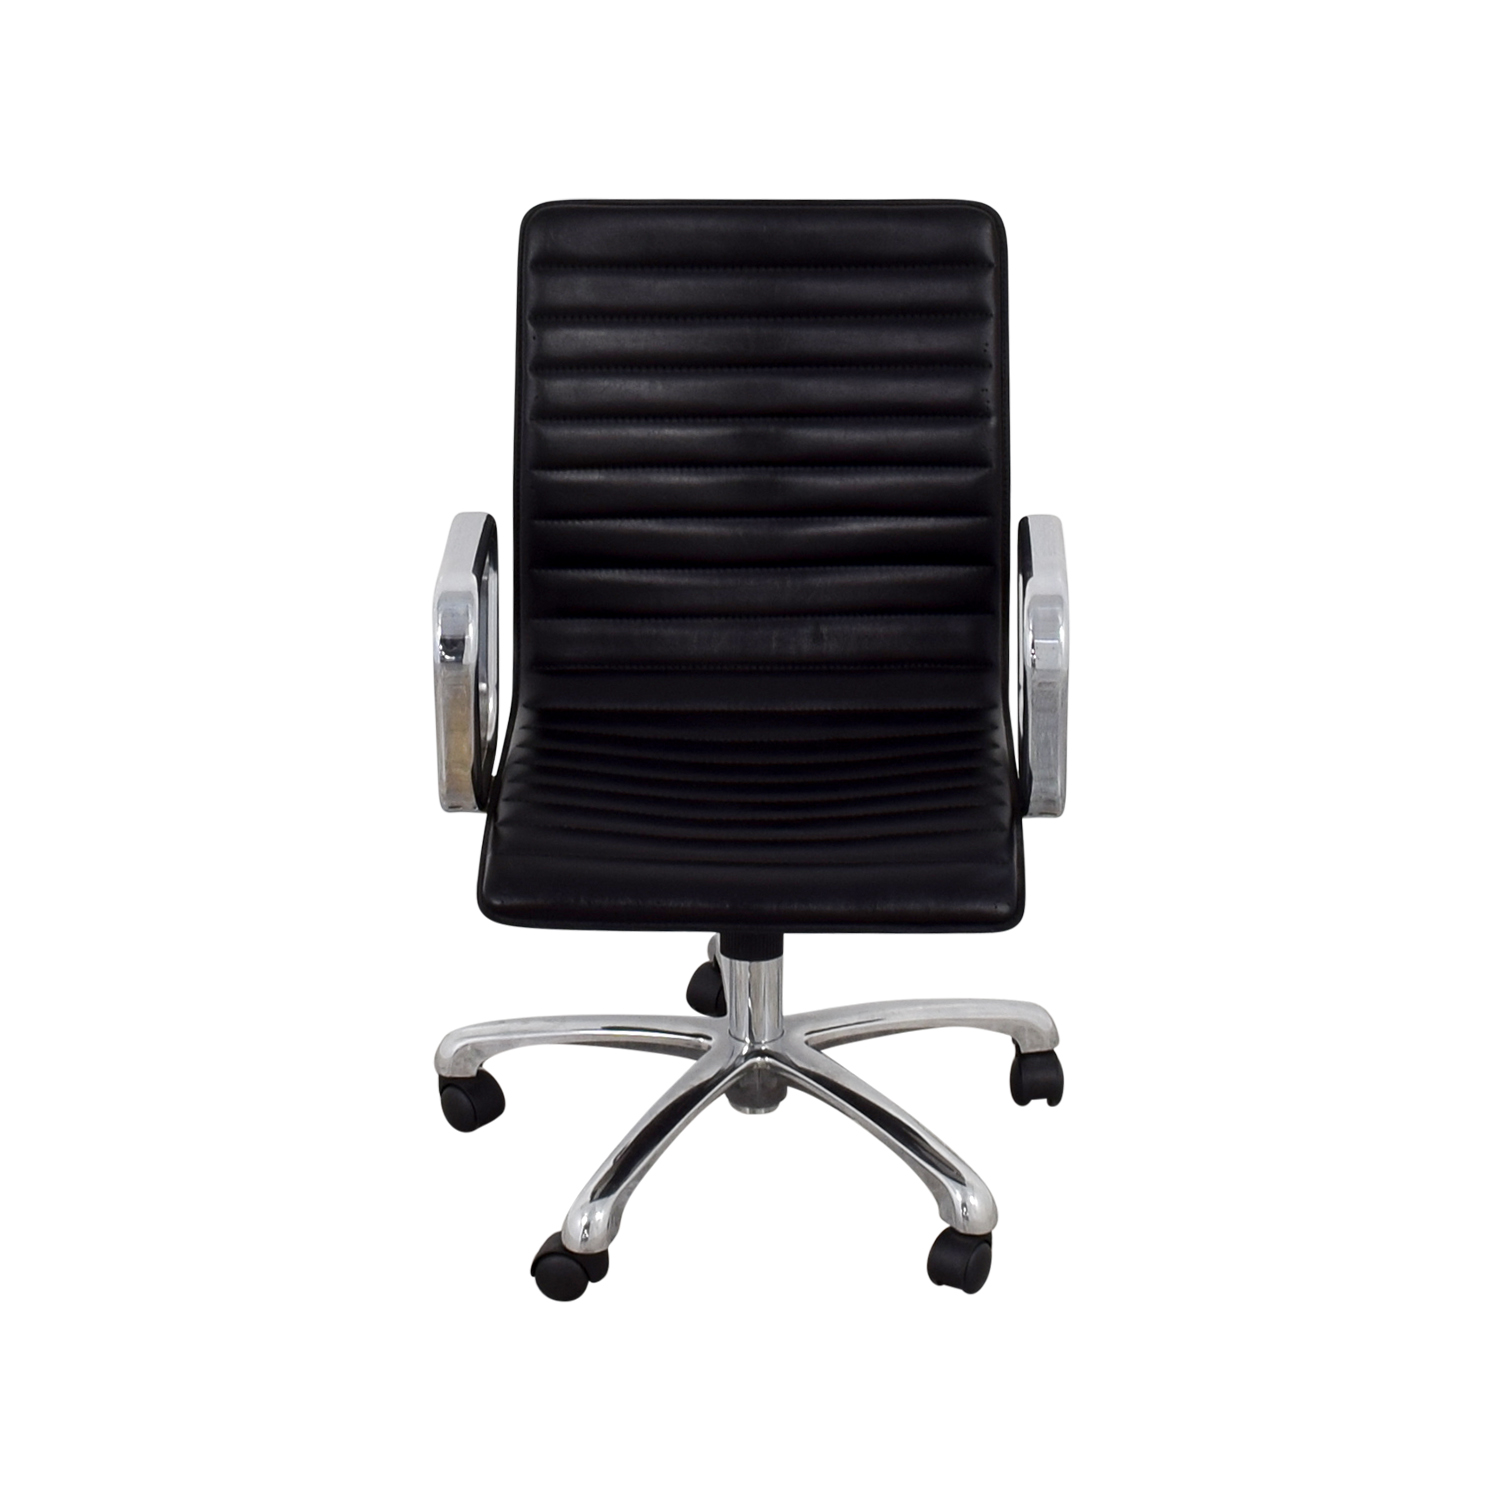 crate and barrel ripple office chair 28 images ripple  : crate and barrel ripple leather office chair second hand from www.wolfcreekmalls.com size 1500 x 1500 jpeg 389kB